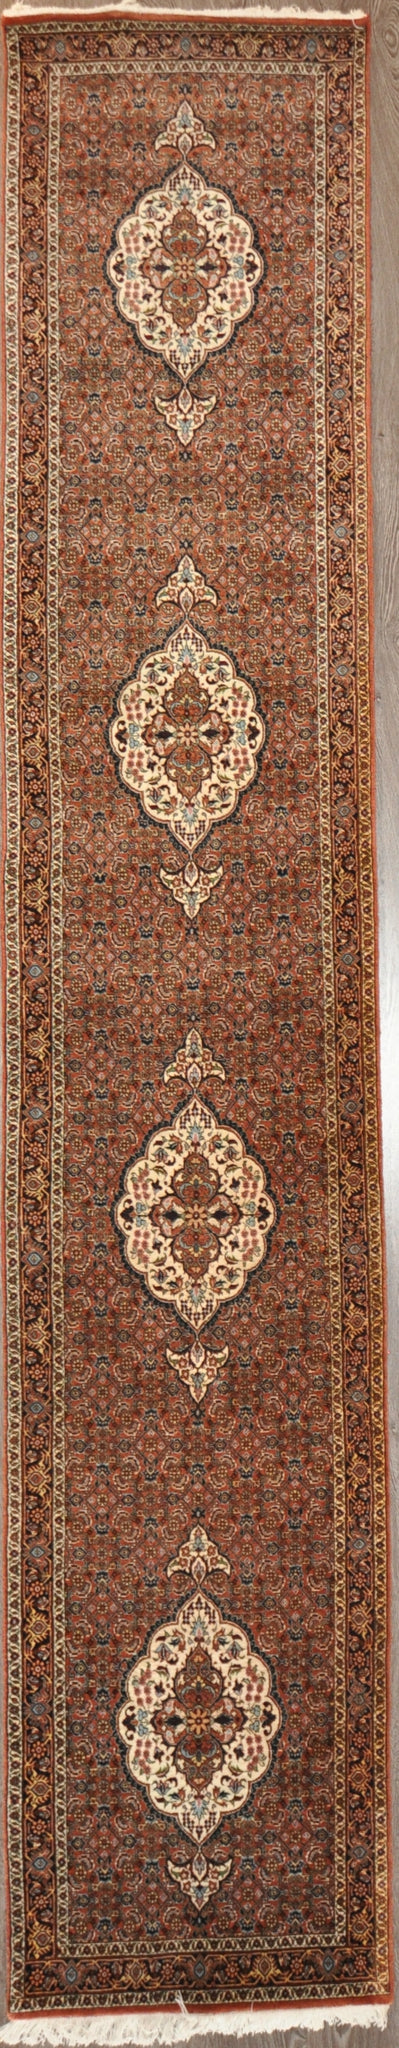 2.6x13.2 Persian  bijar runner #61465